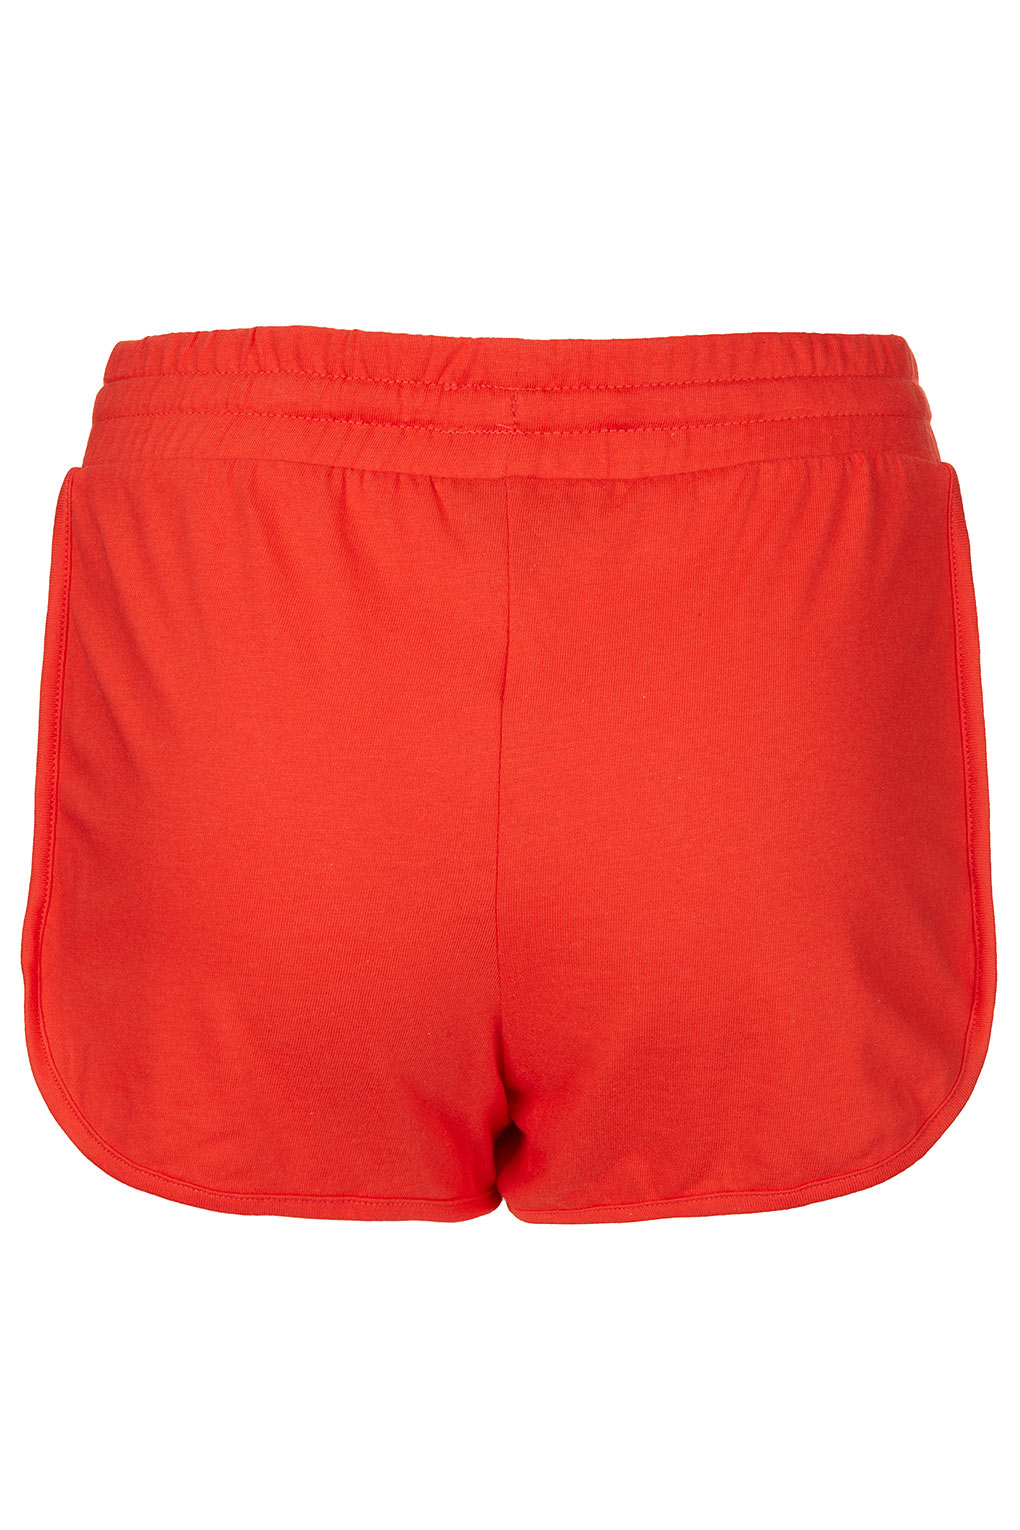 Topshop Red Side Panel Runner Shorts in Red | Lyst